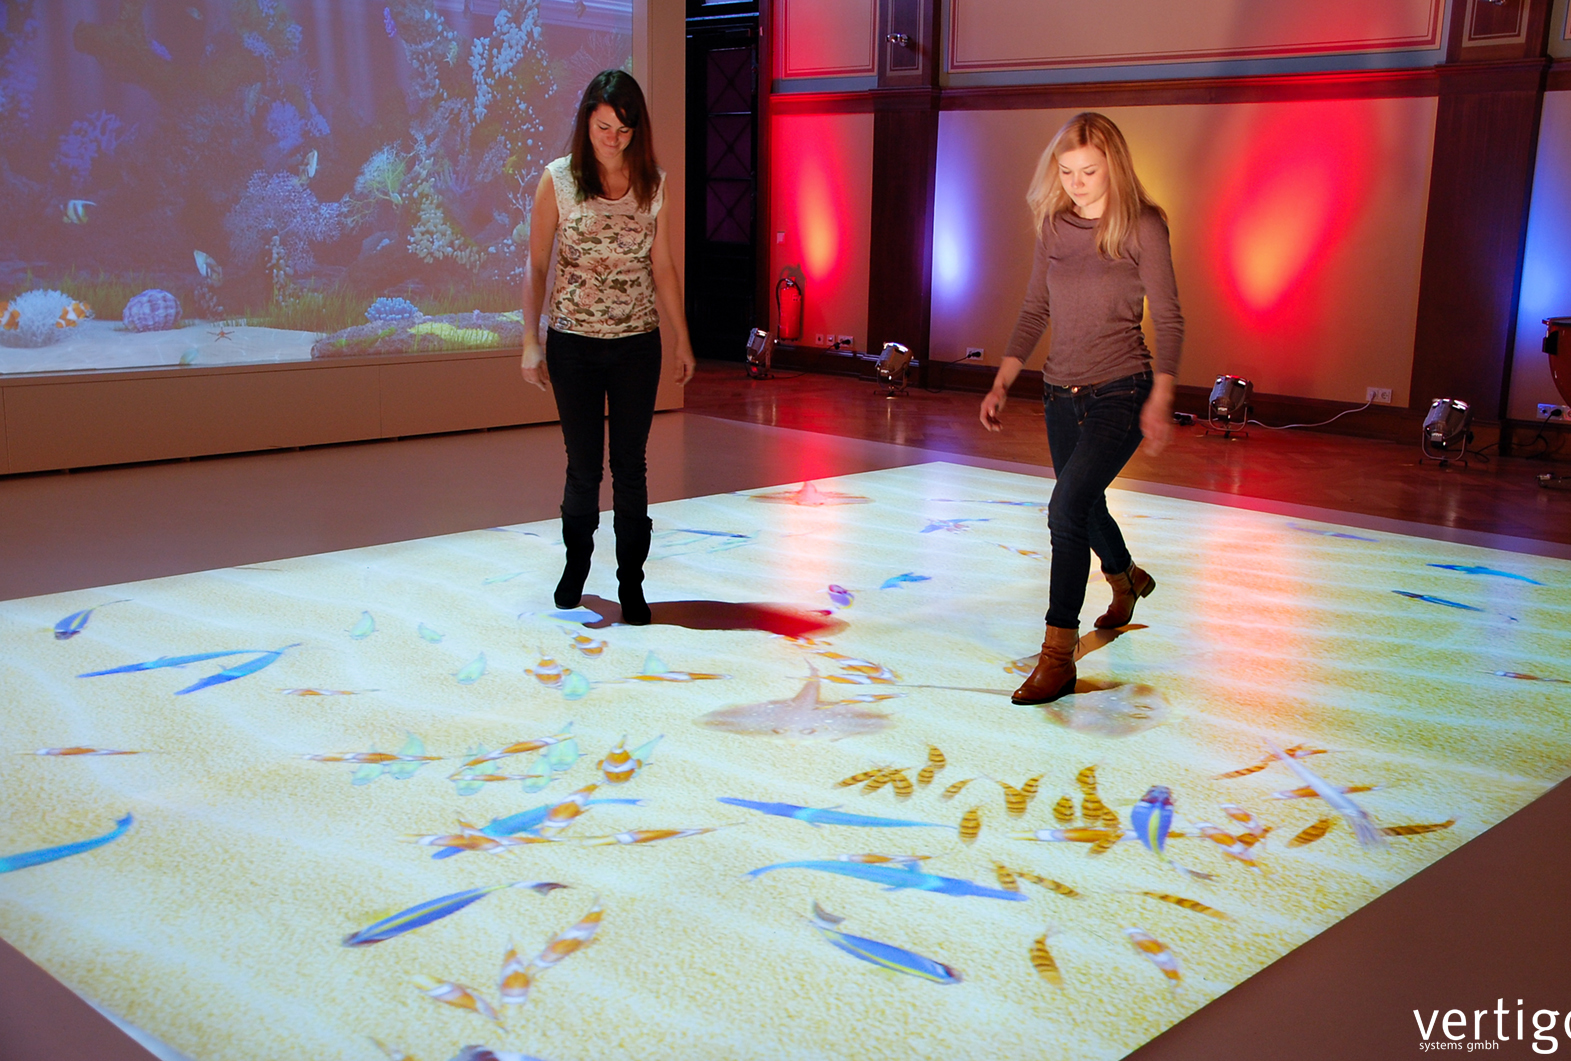 floor projection games by vertigo systems